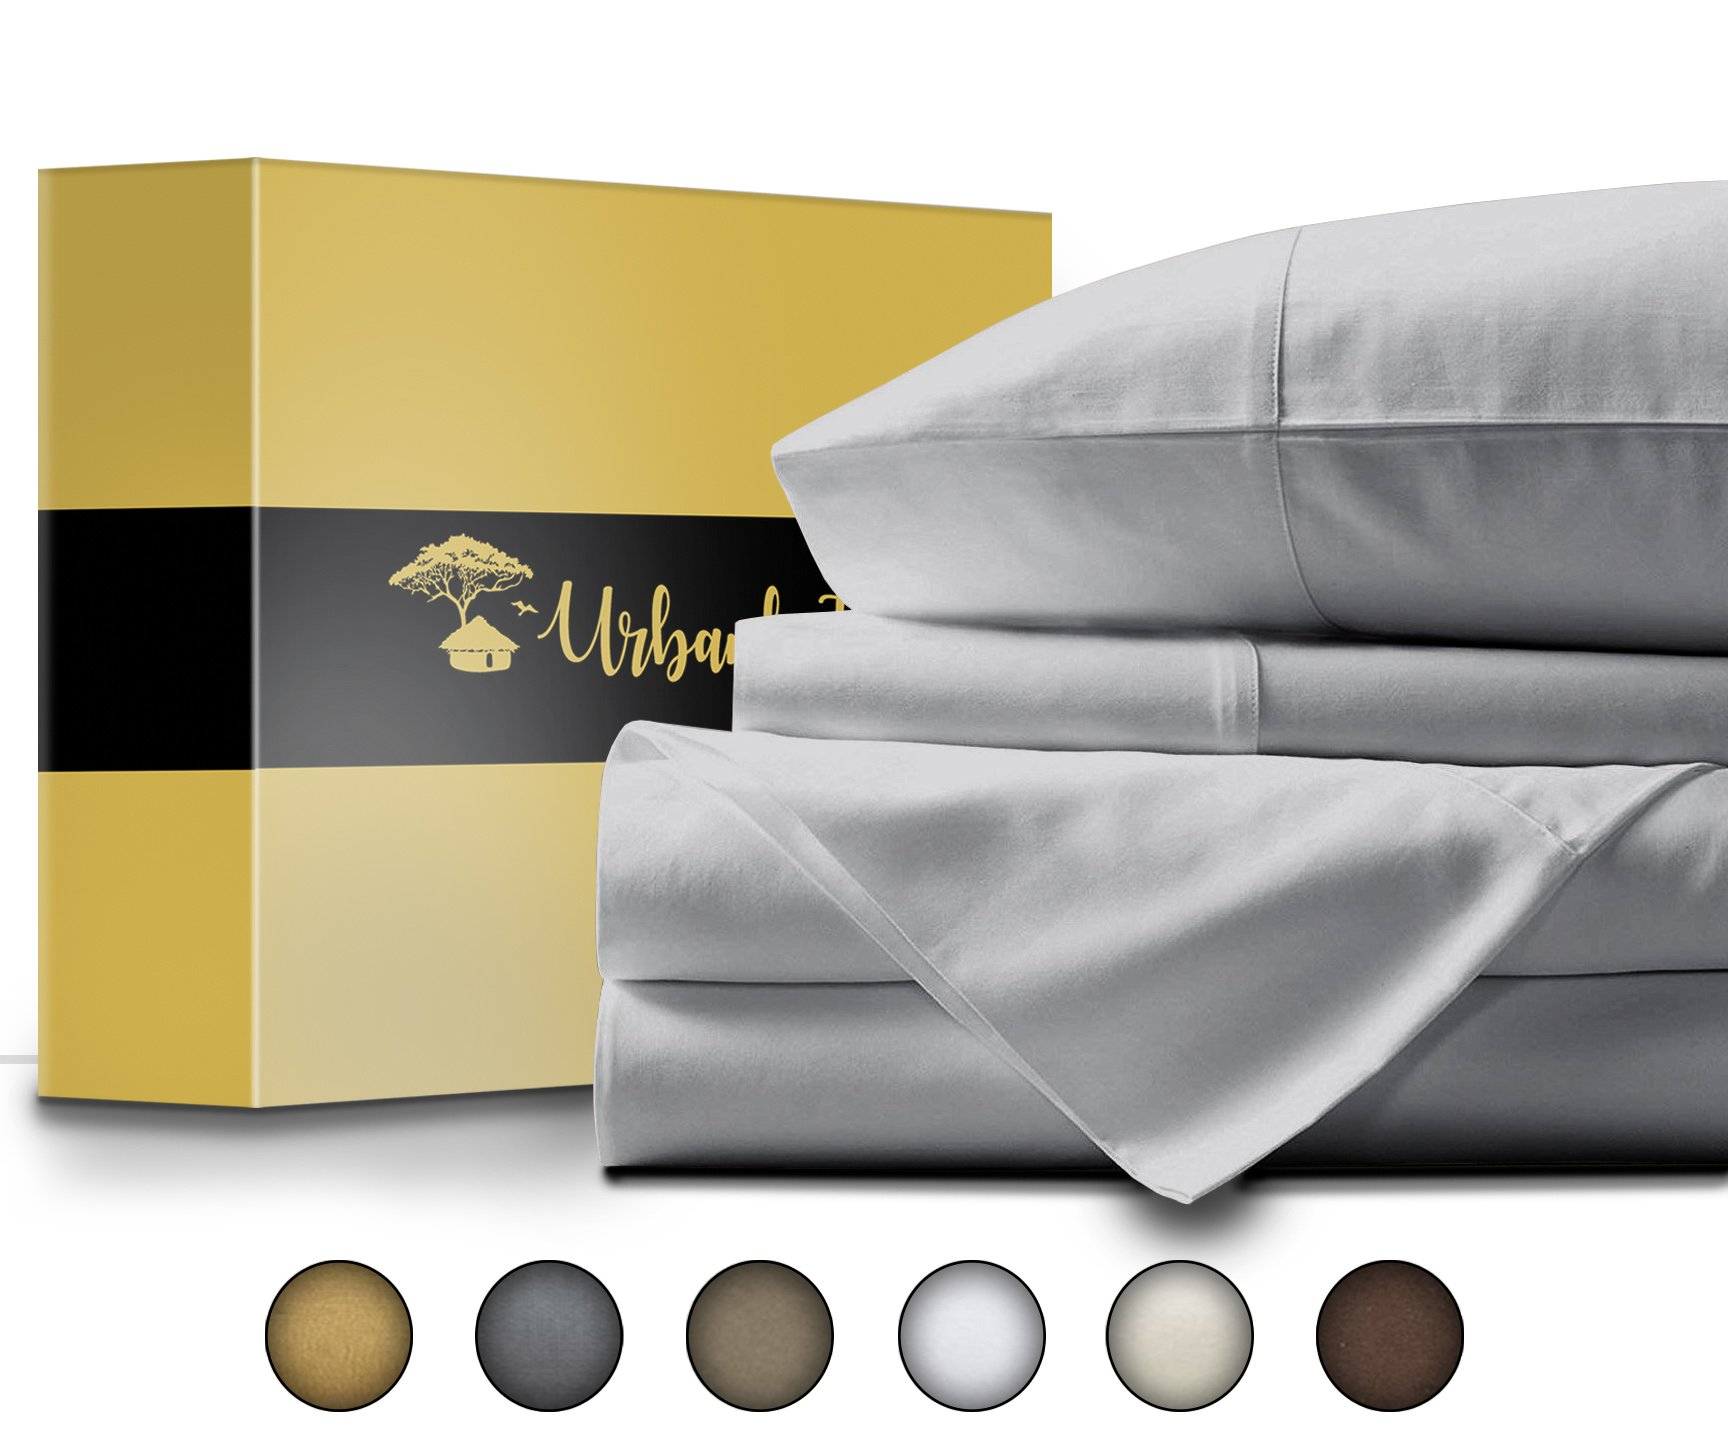 Urban Hut Egyptian Cotton Sheets Set (4 Piece) 800 Thread Count - Bedspread Deep Pocket Premium Bedding Set, Luxury Bed Sheets for Hotel Collection Soft Sateen Weave (California King, Silver Grey) by URBANHUT (Image #3)